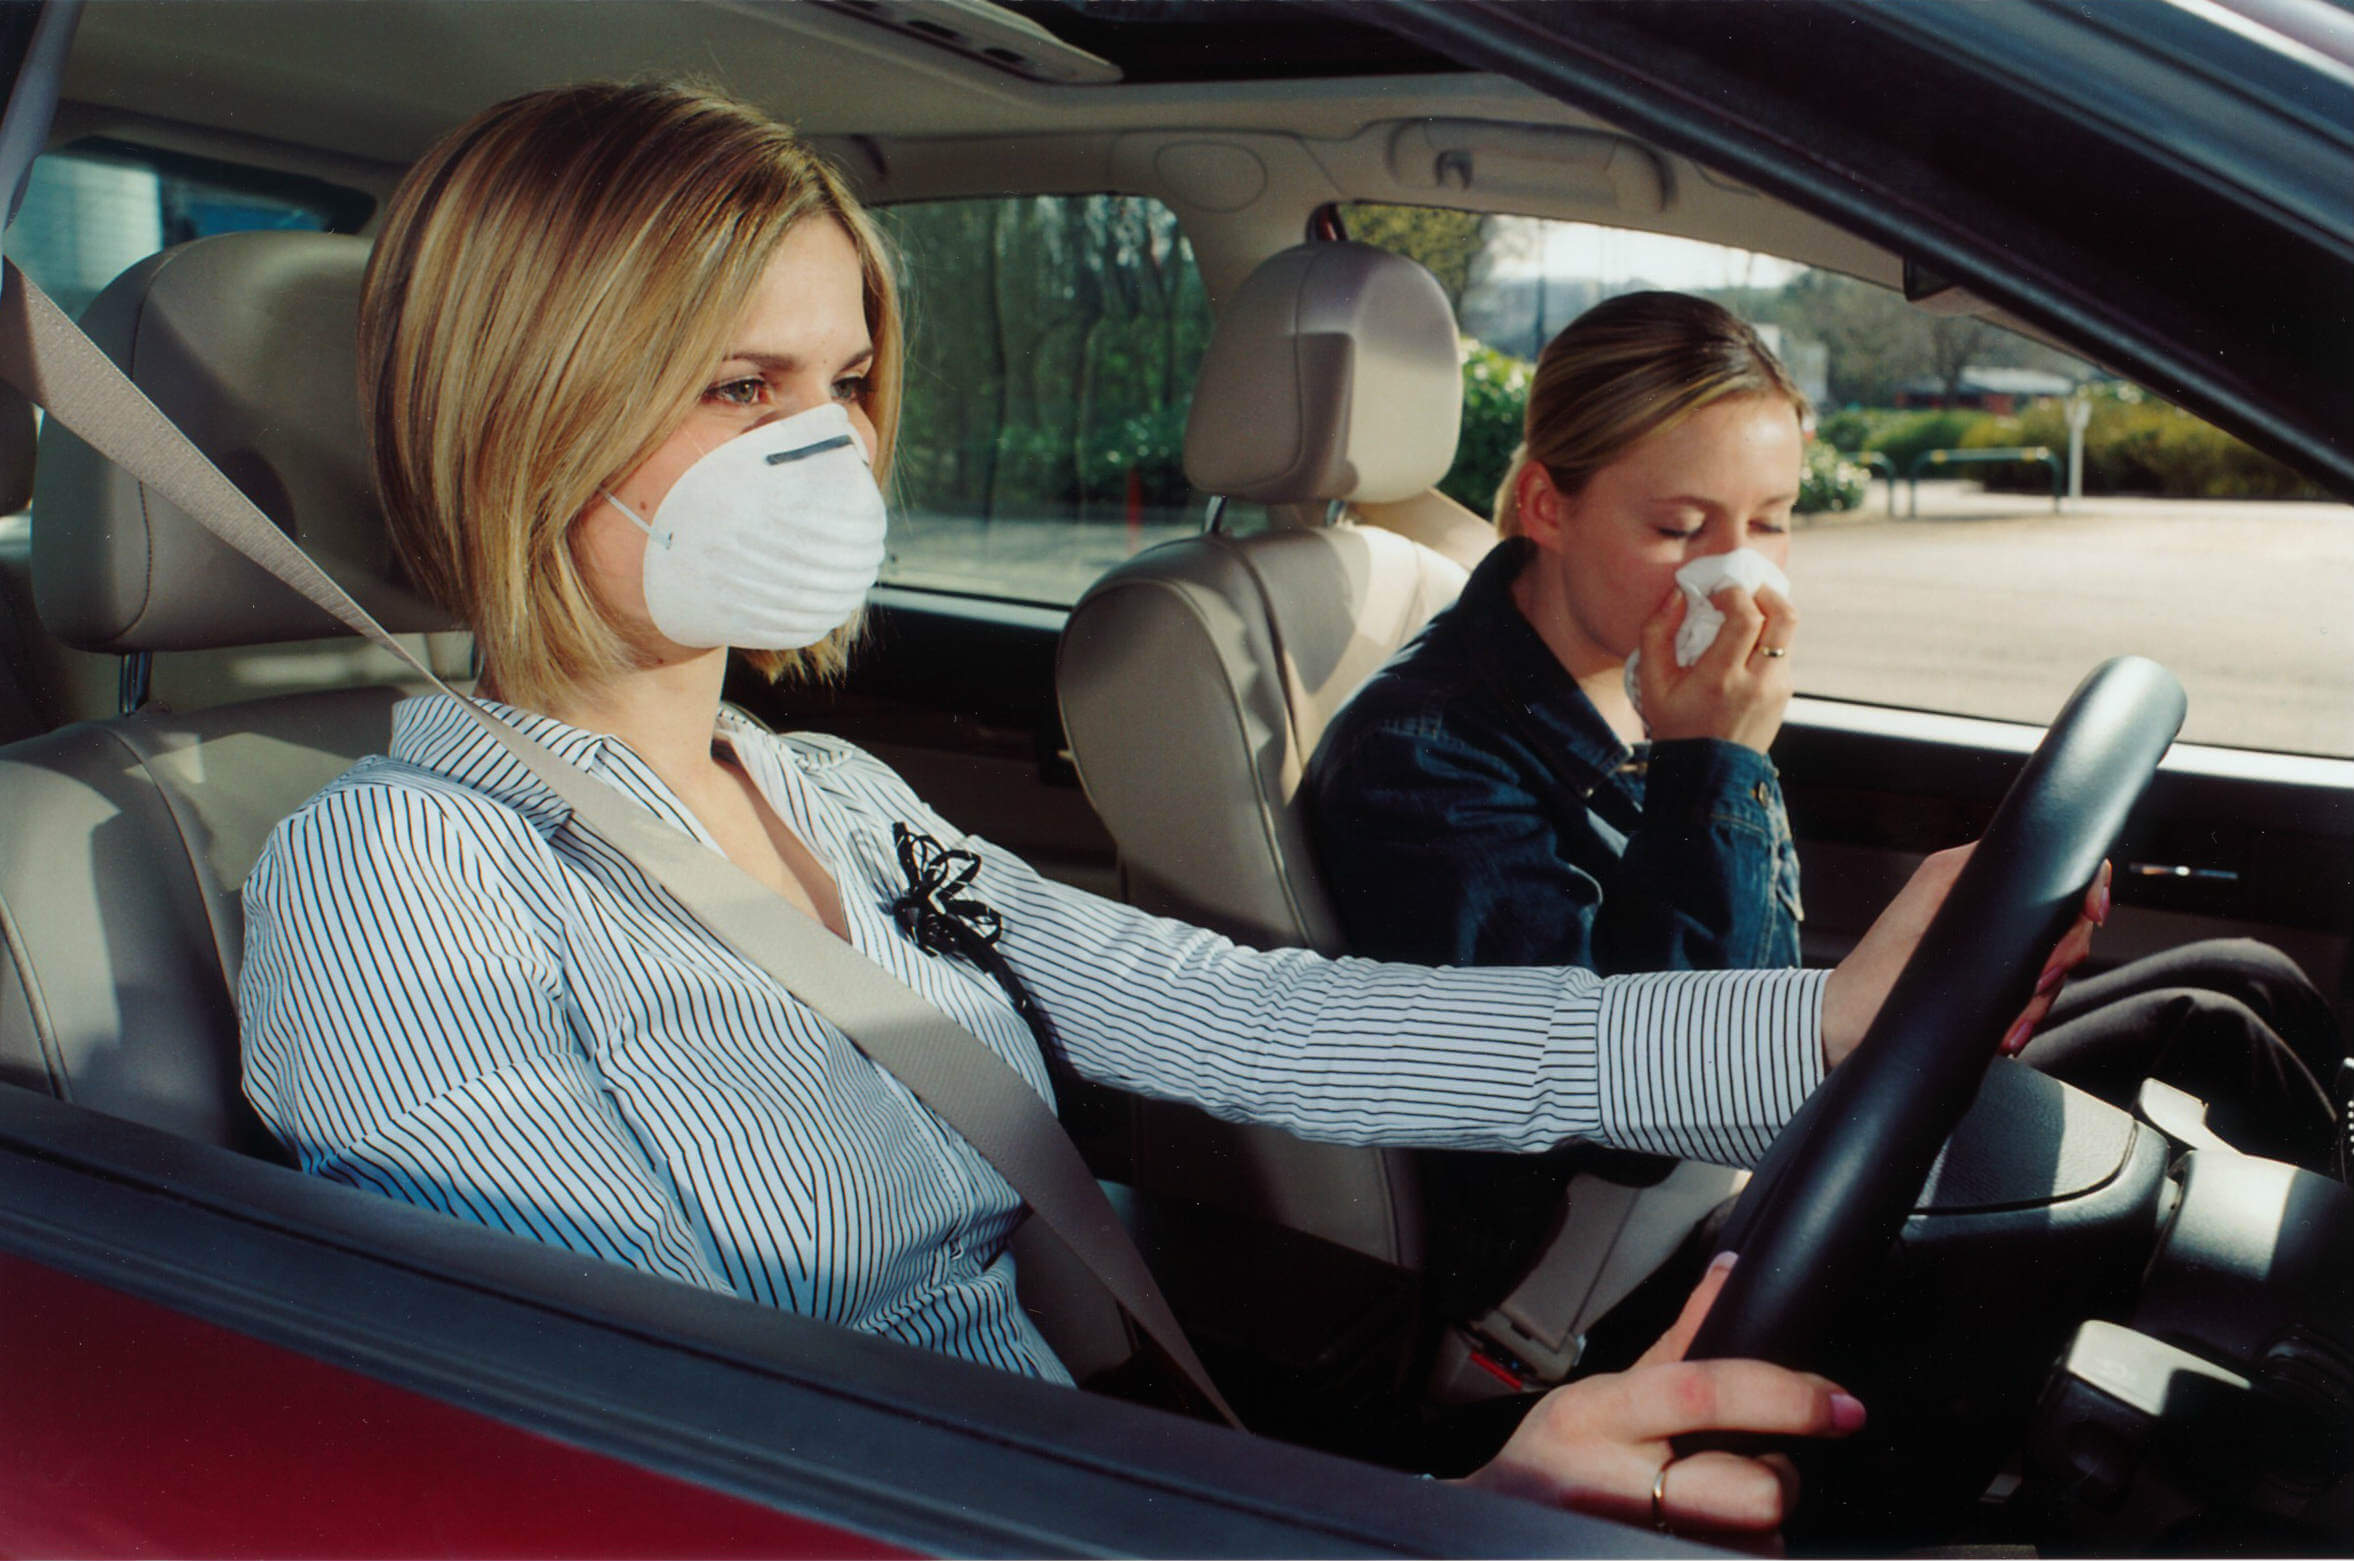 Driver and passenger wearing face masks to protect them from harmful bacteria in cabin air system due to lack of air filter change